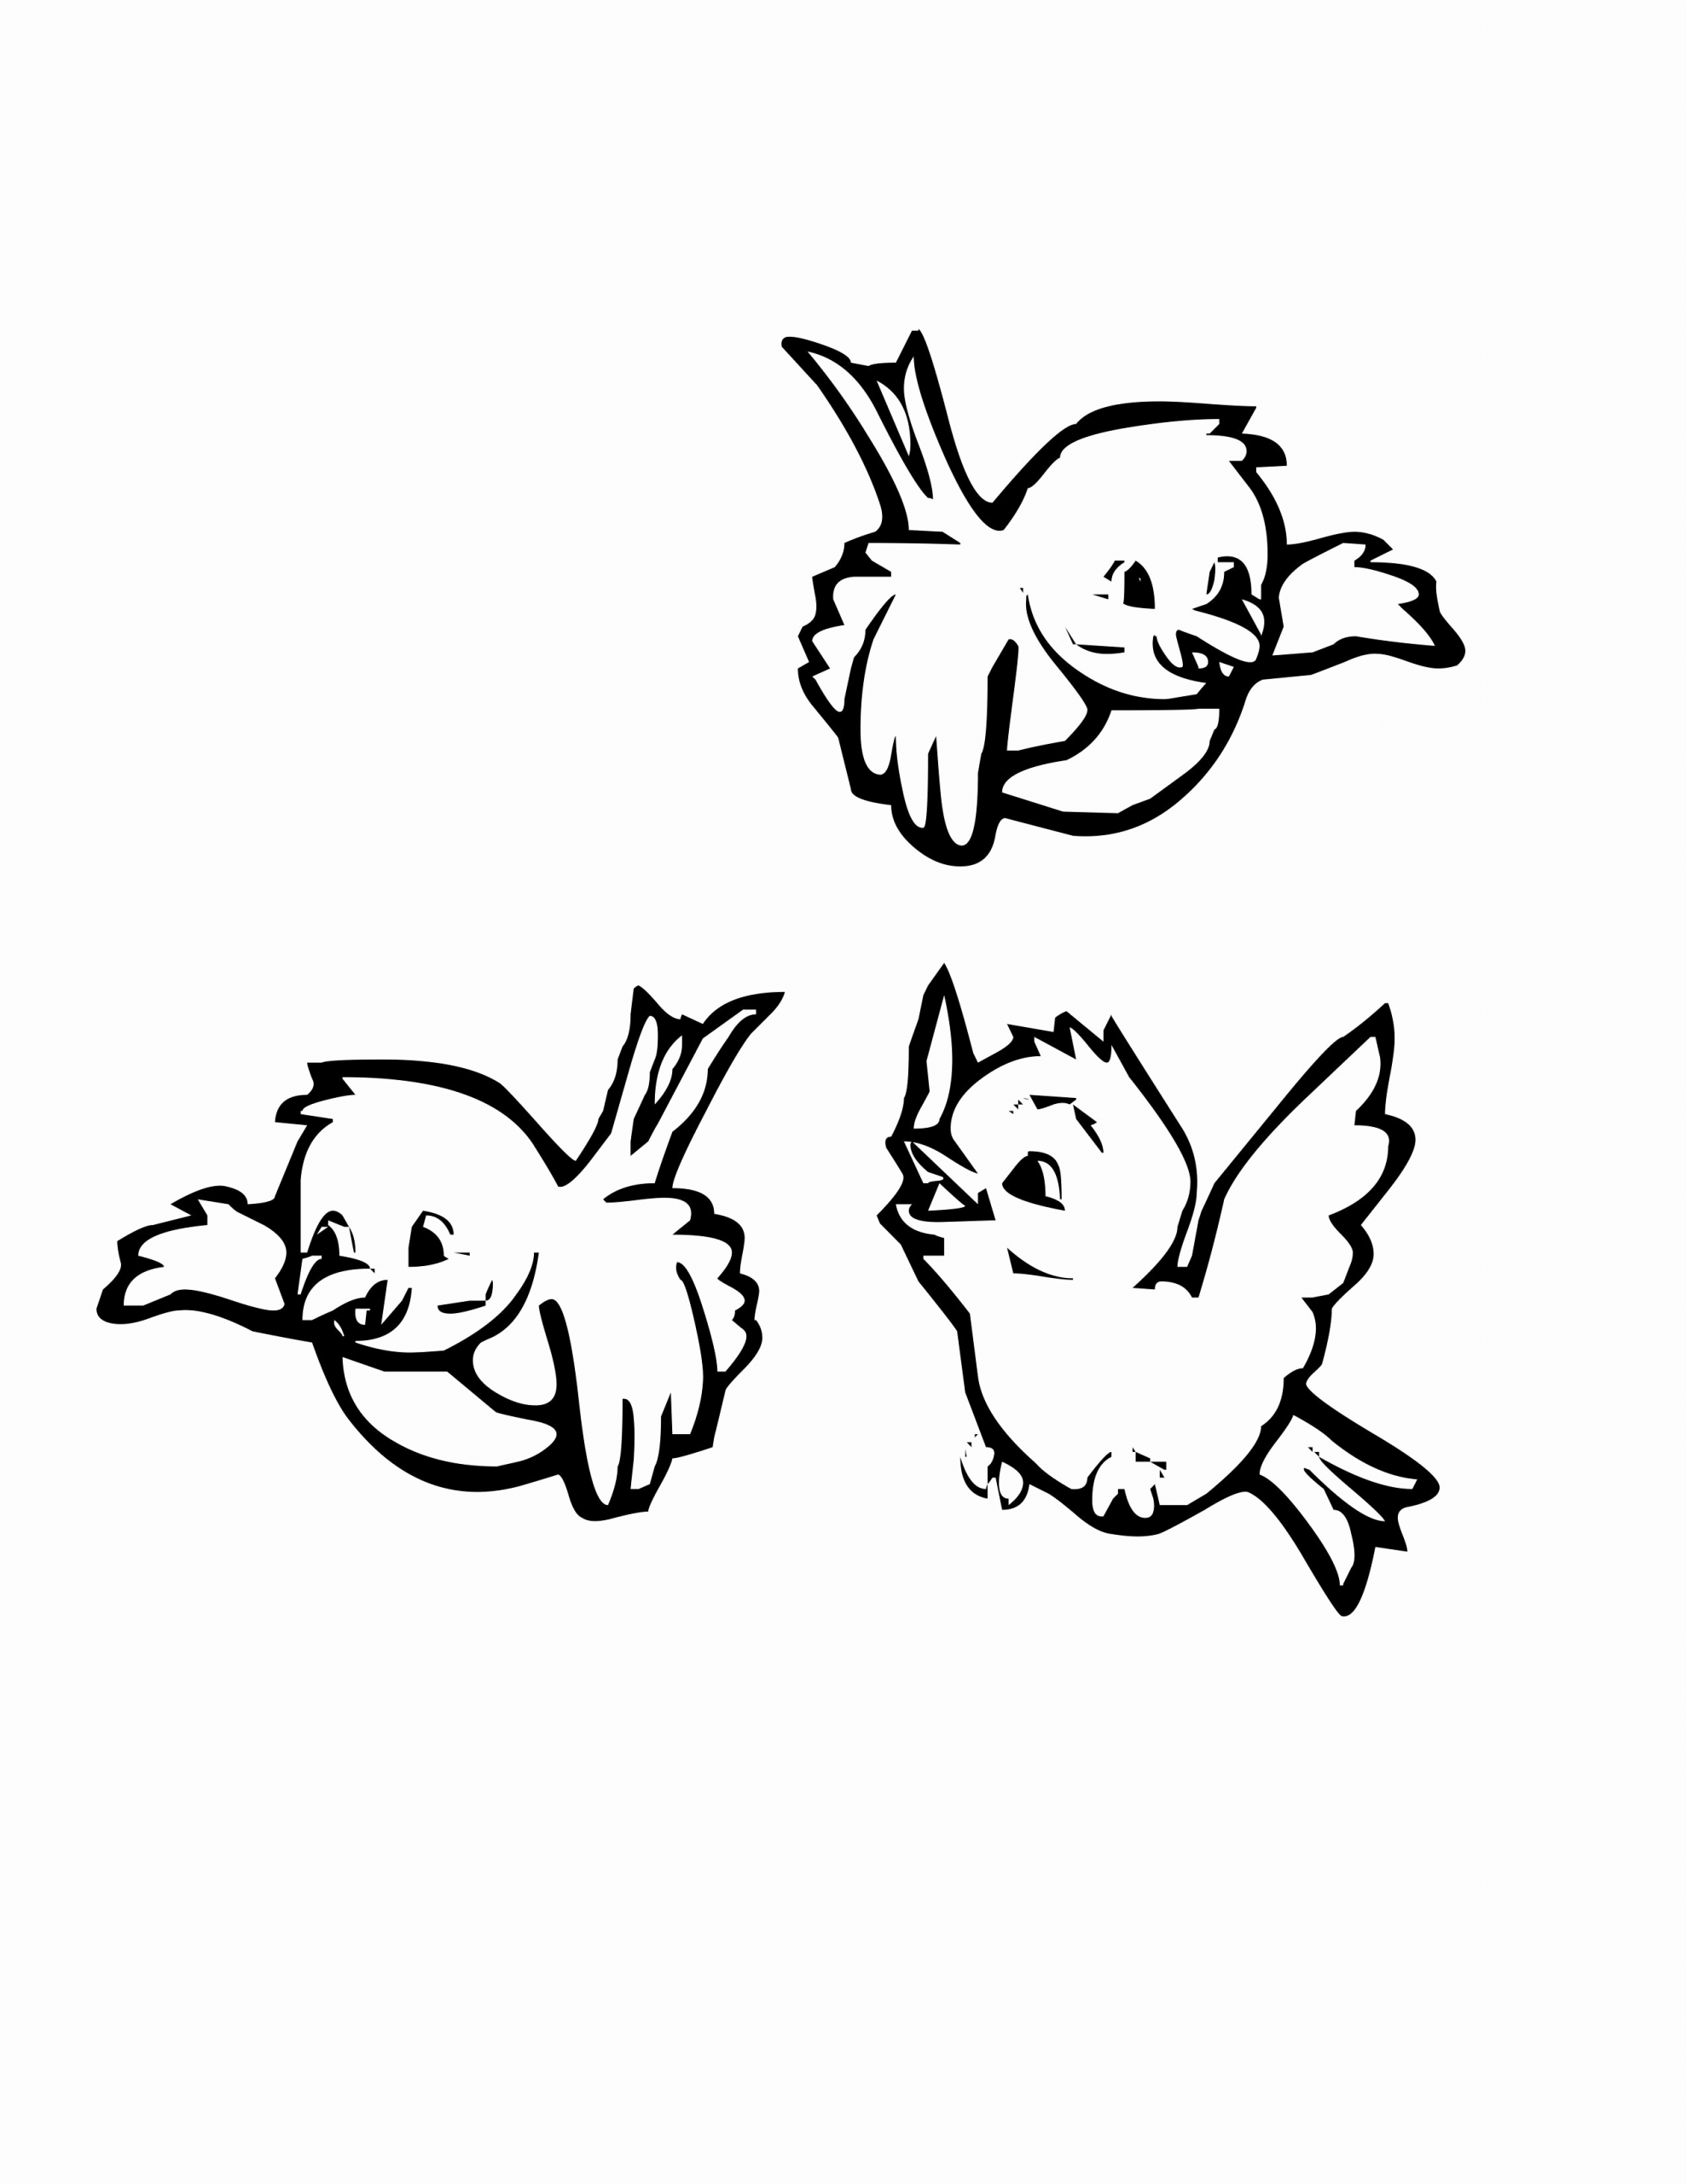 Cartoon Flying Bird Coloring Pages For Kids Bird Coloring Pages Cartoon Coloring Pages Free Coloring Pages